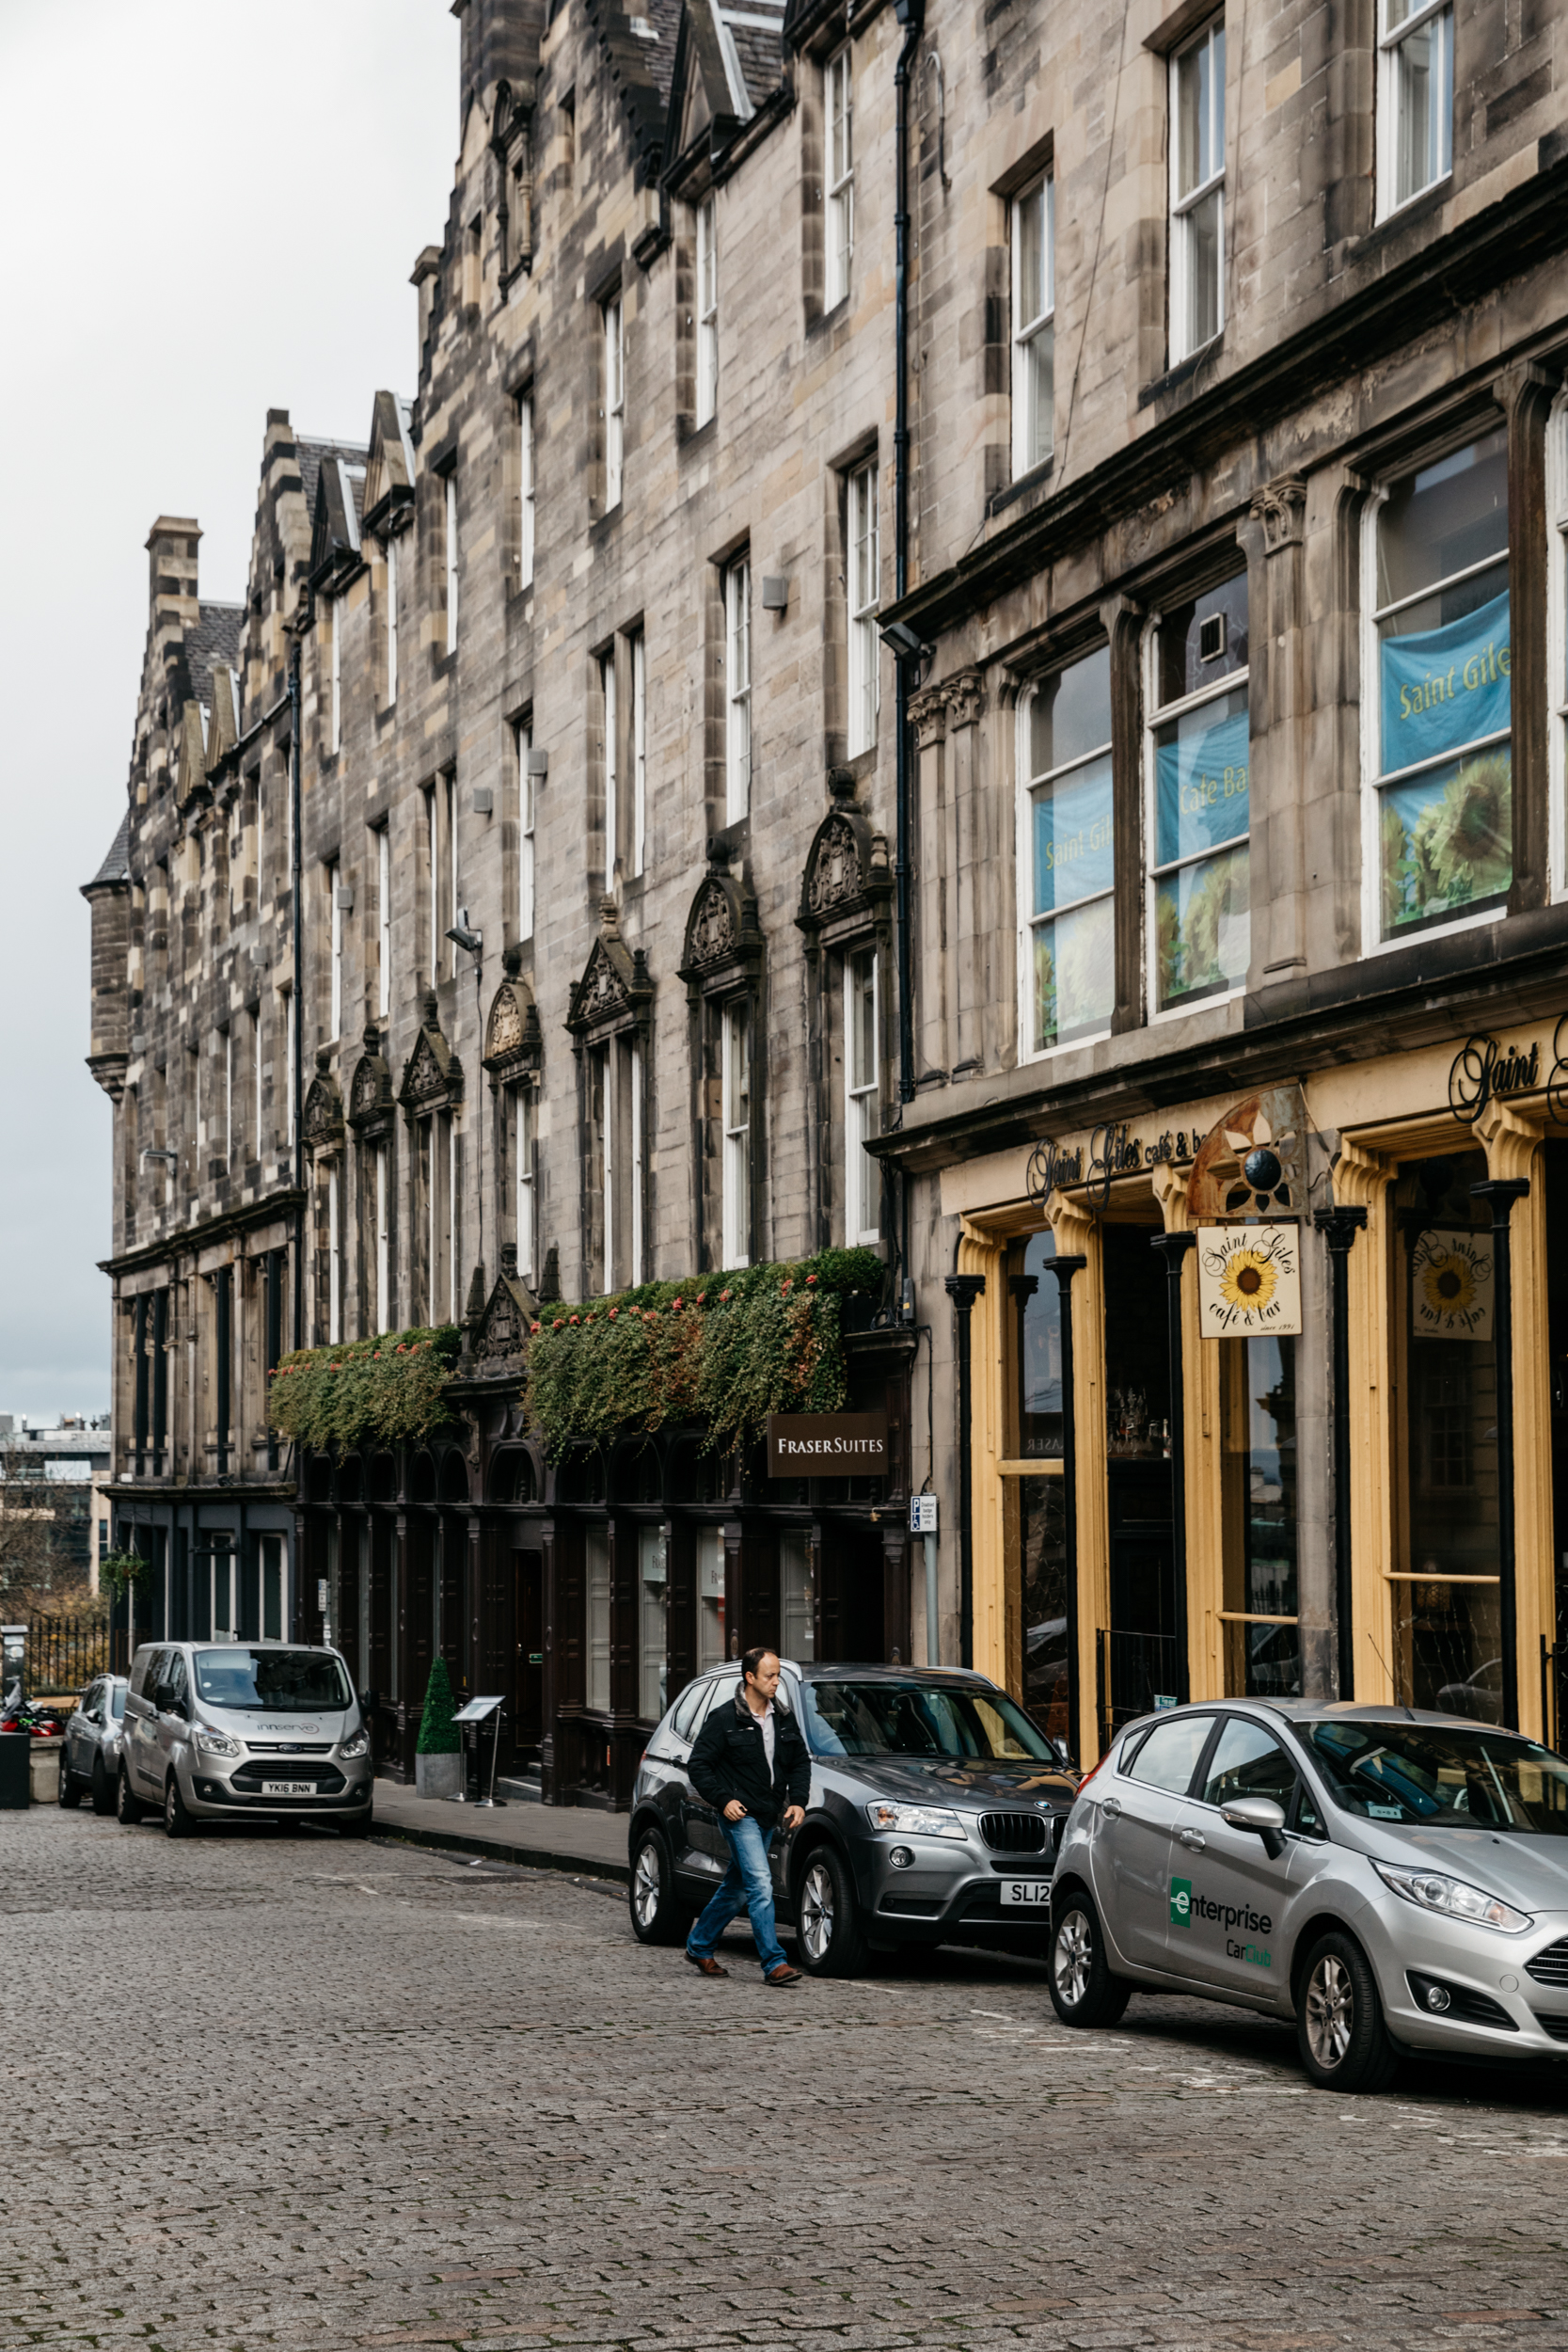 london-edinburgh-1028.jpg